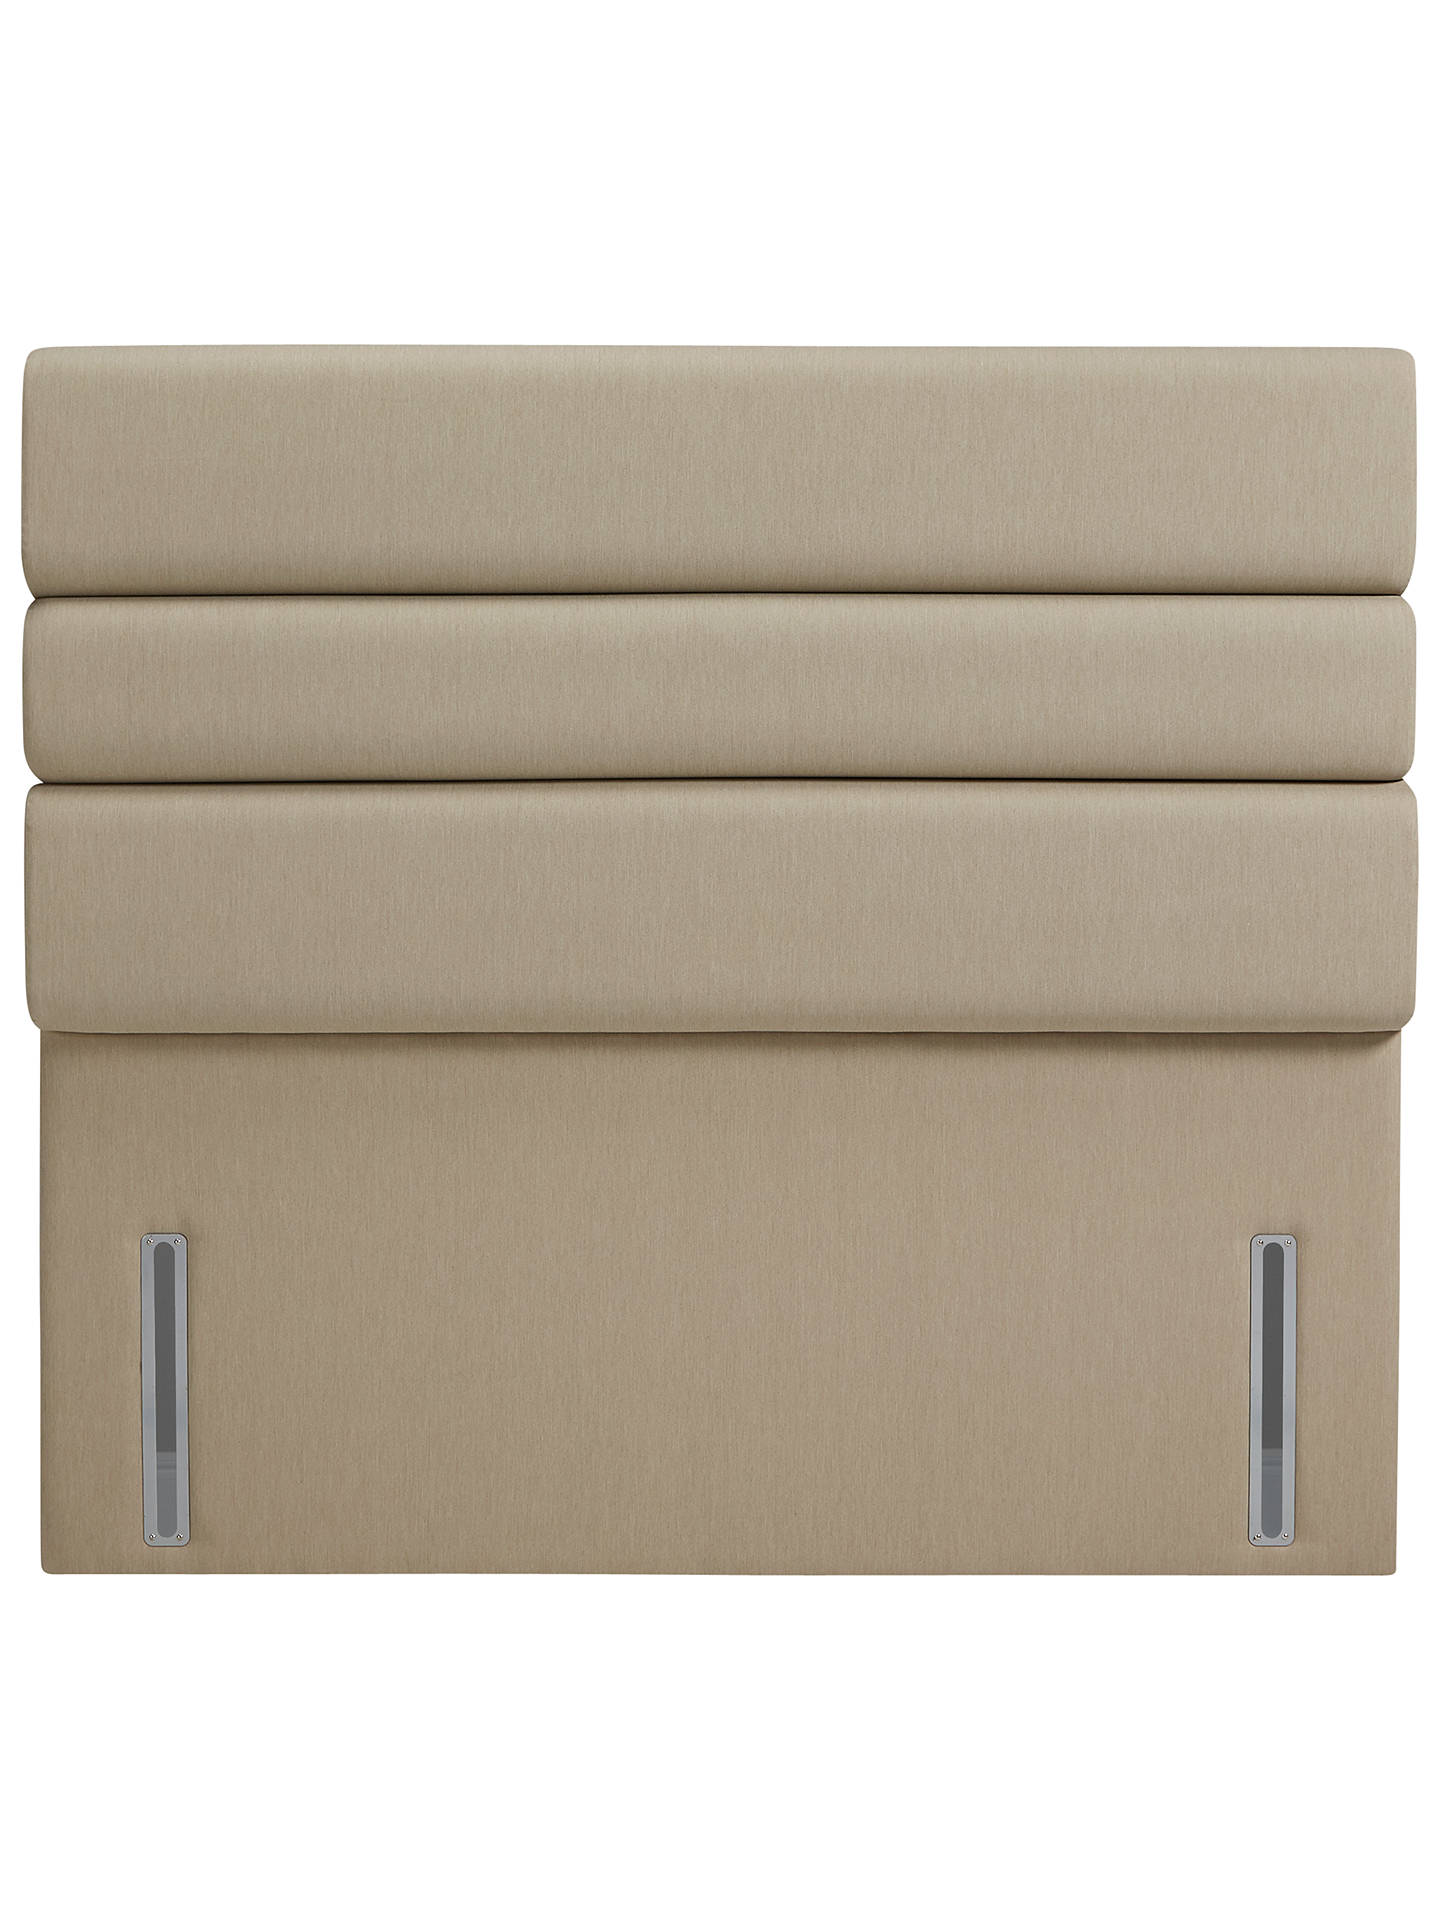 Buy John Lewis & Partners The Ultimate Collection Lancaster Headboard, Pebble Canvas, Super King Size Online at johnlewis.com